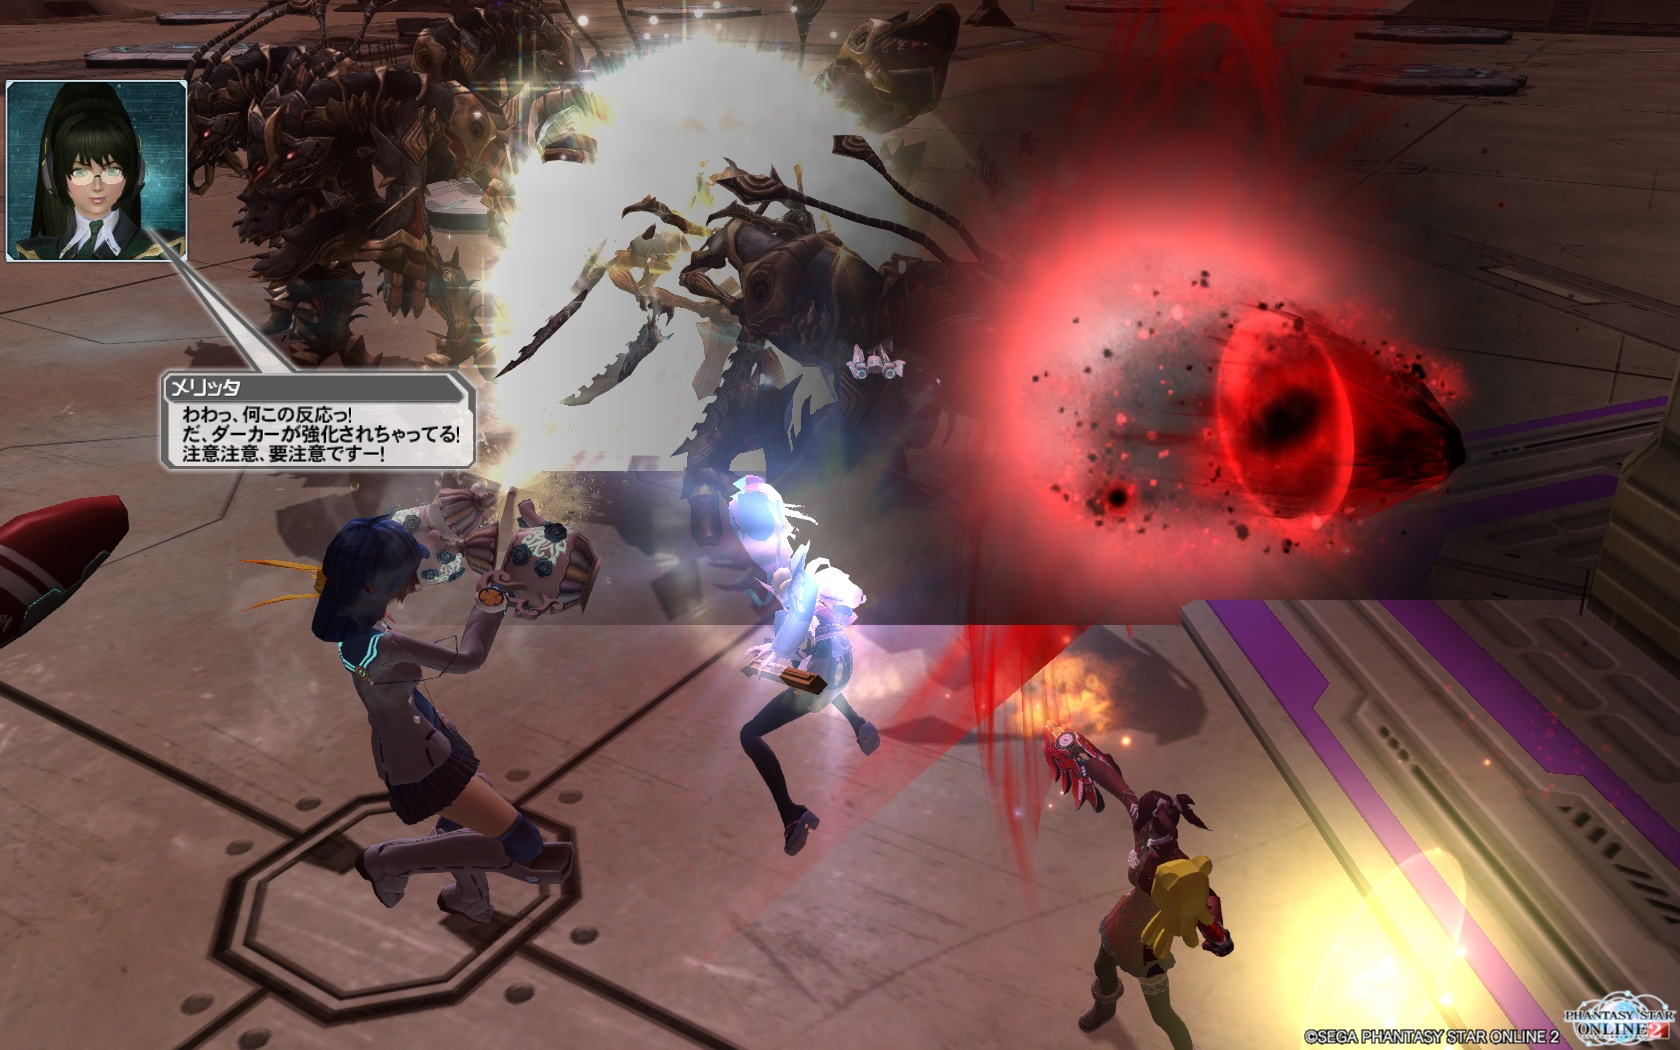 PSO2Blog | Thoughts on PSO2 news, features and other things